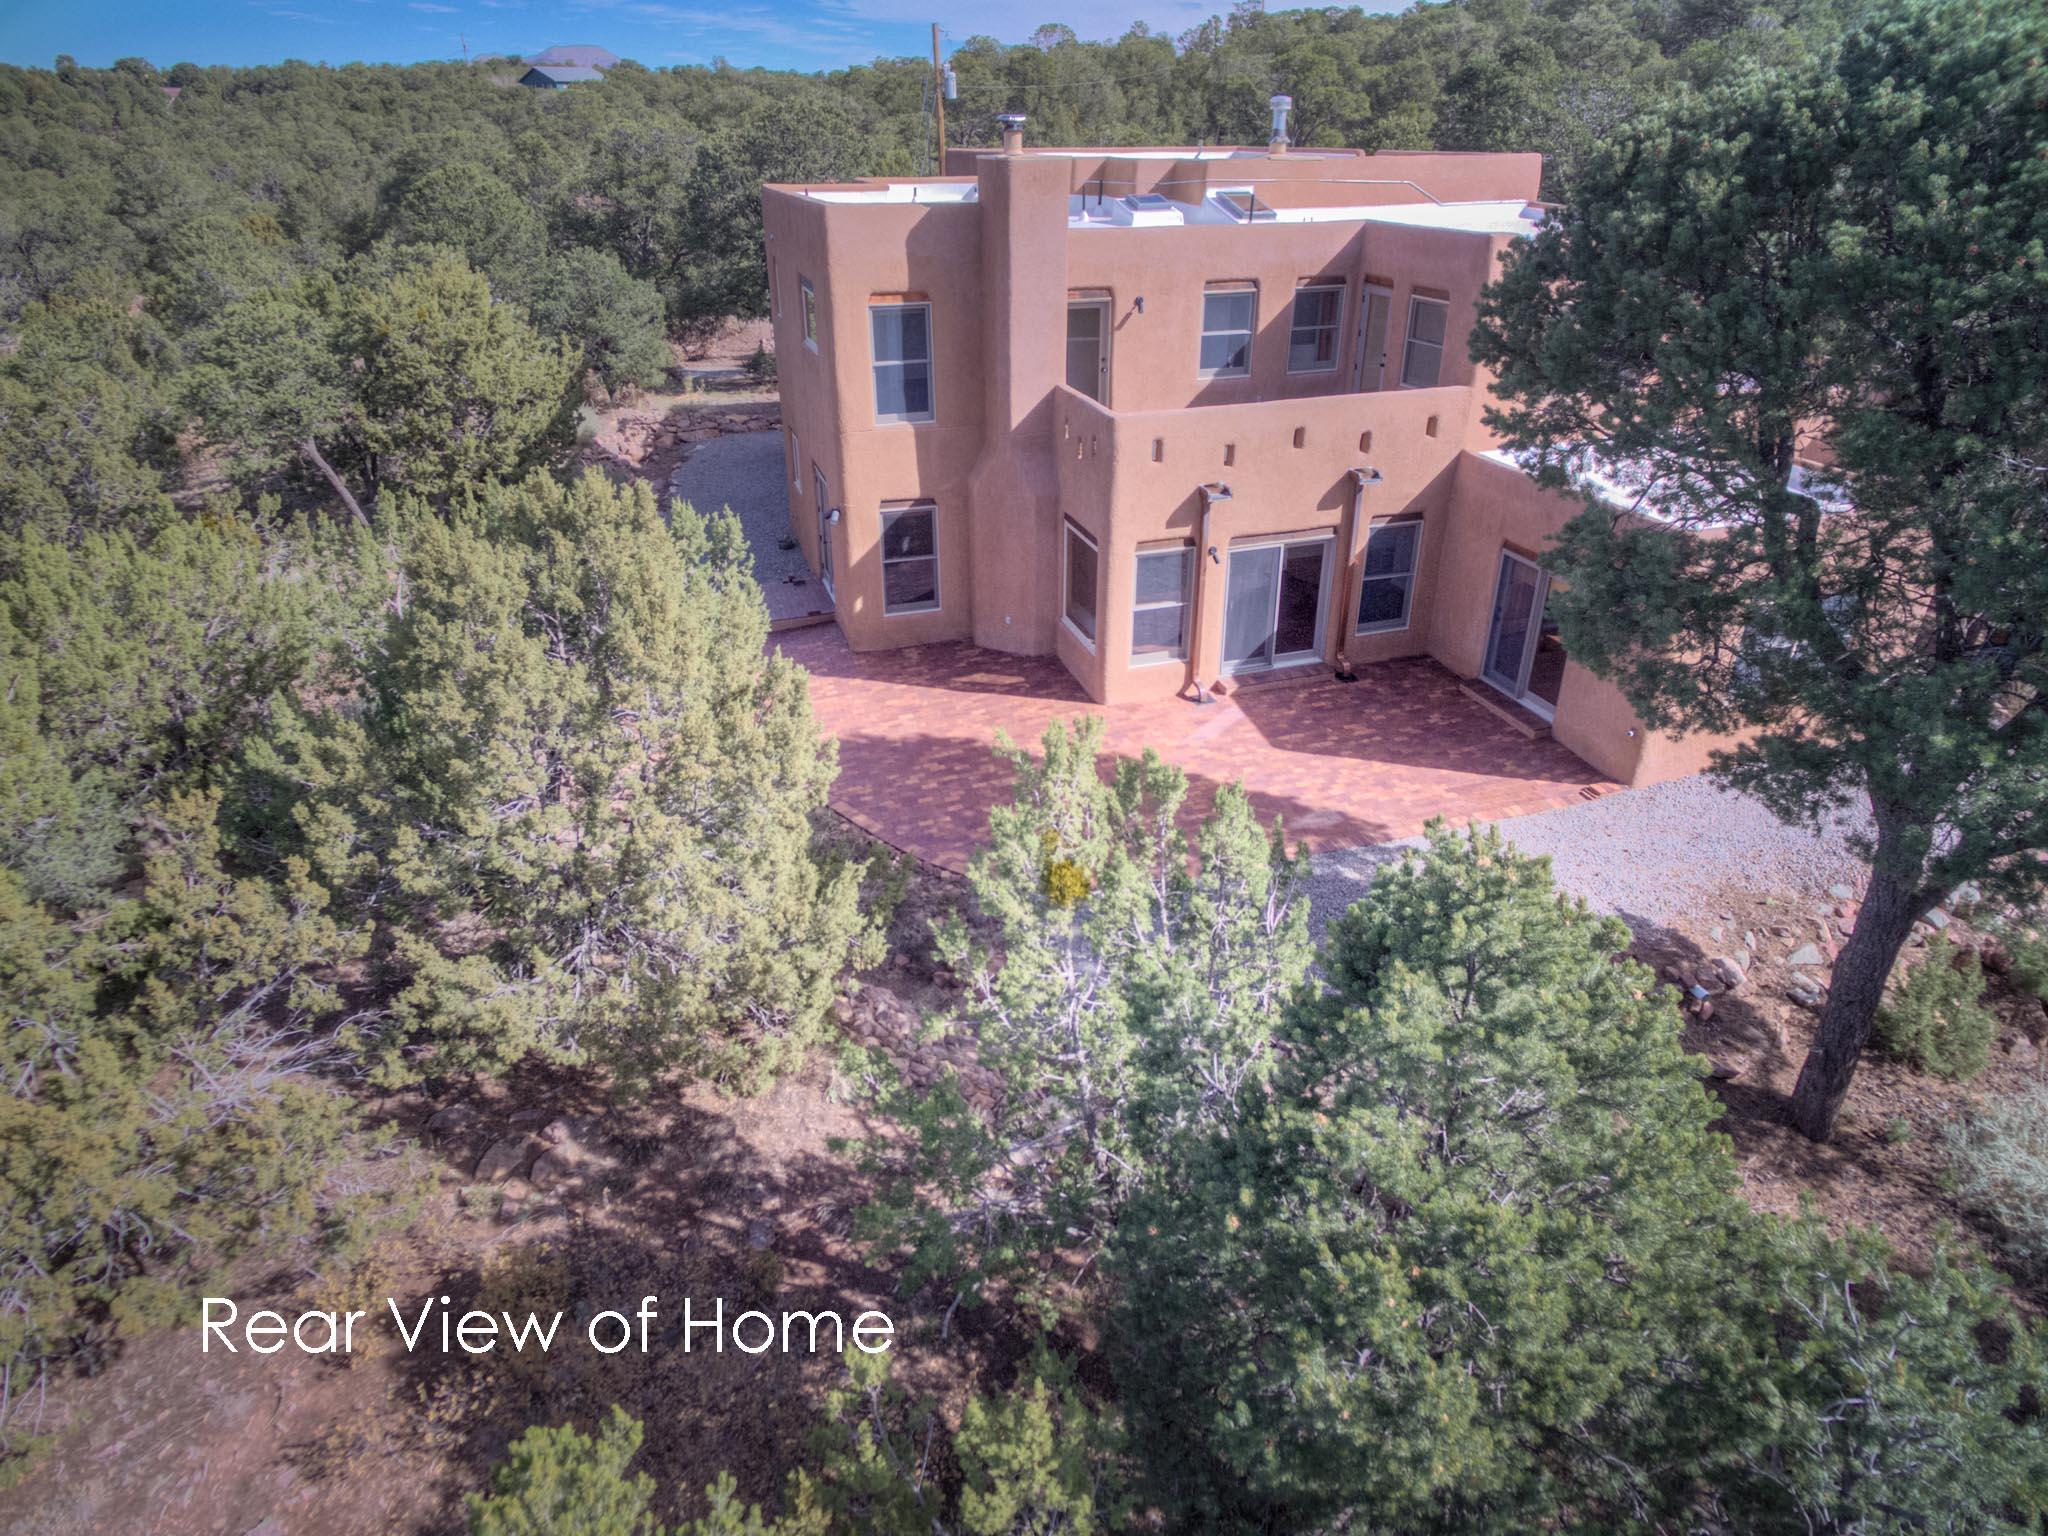 Stunning East Mountain home w/ magnificent views of mountains & sunsets. 15 Min drive to ABQ. Heavily wooded 5 acres (adjacent 5 acres available).  Floorplan offers: great room & large family room (21 X 25) Garage could fit 4 cars + an additional shop area. Kitchen features an island, oversize refrigerator and freezer, hickory cabinets with Colorado slate Formica counter tops, pantry.  Great room offers abundant windows with great forest views and natural light + wood burning kiva style fireplace. Other features: high, viga ceilings, Saltillo tile flooring,  radiant heat, evaporative cooling, stucco, TPO roof, 10x12 shed. Fantastic outdoor brick patio: 2 upper decks (1 covered) offer stunning views.  Well/septic/home inspections complete.  Floorplan available. + much more !!